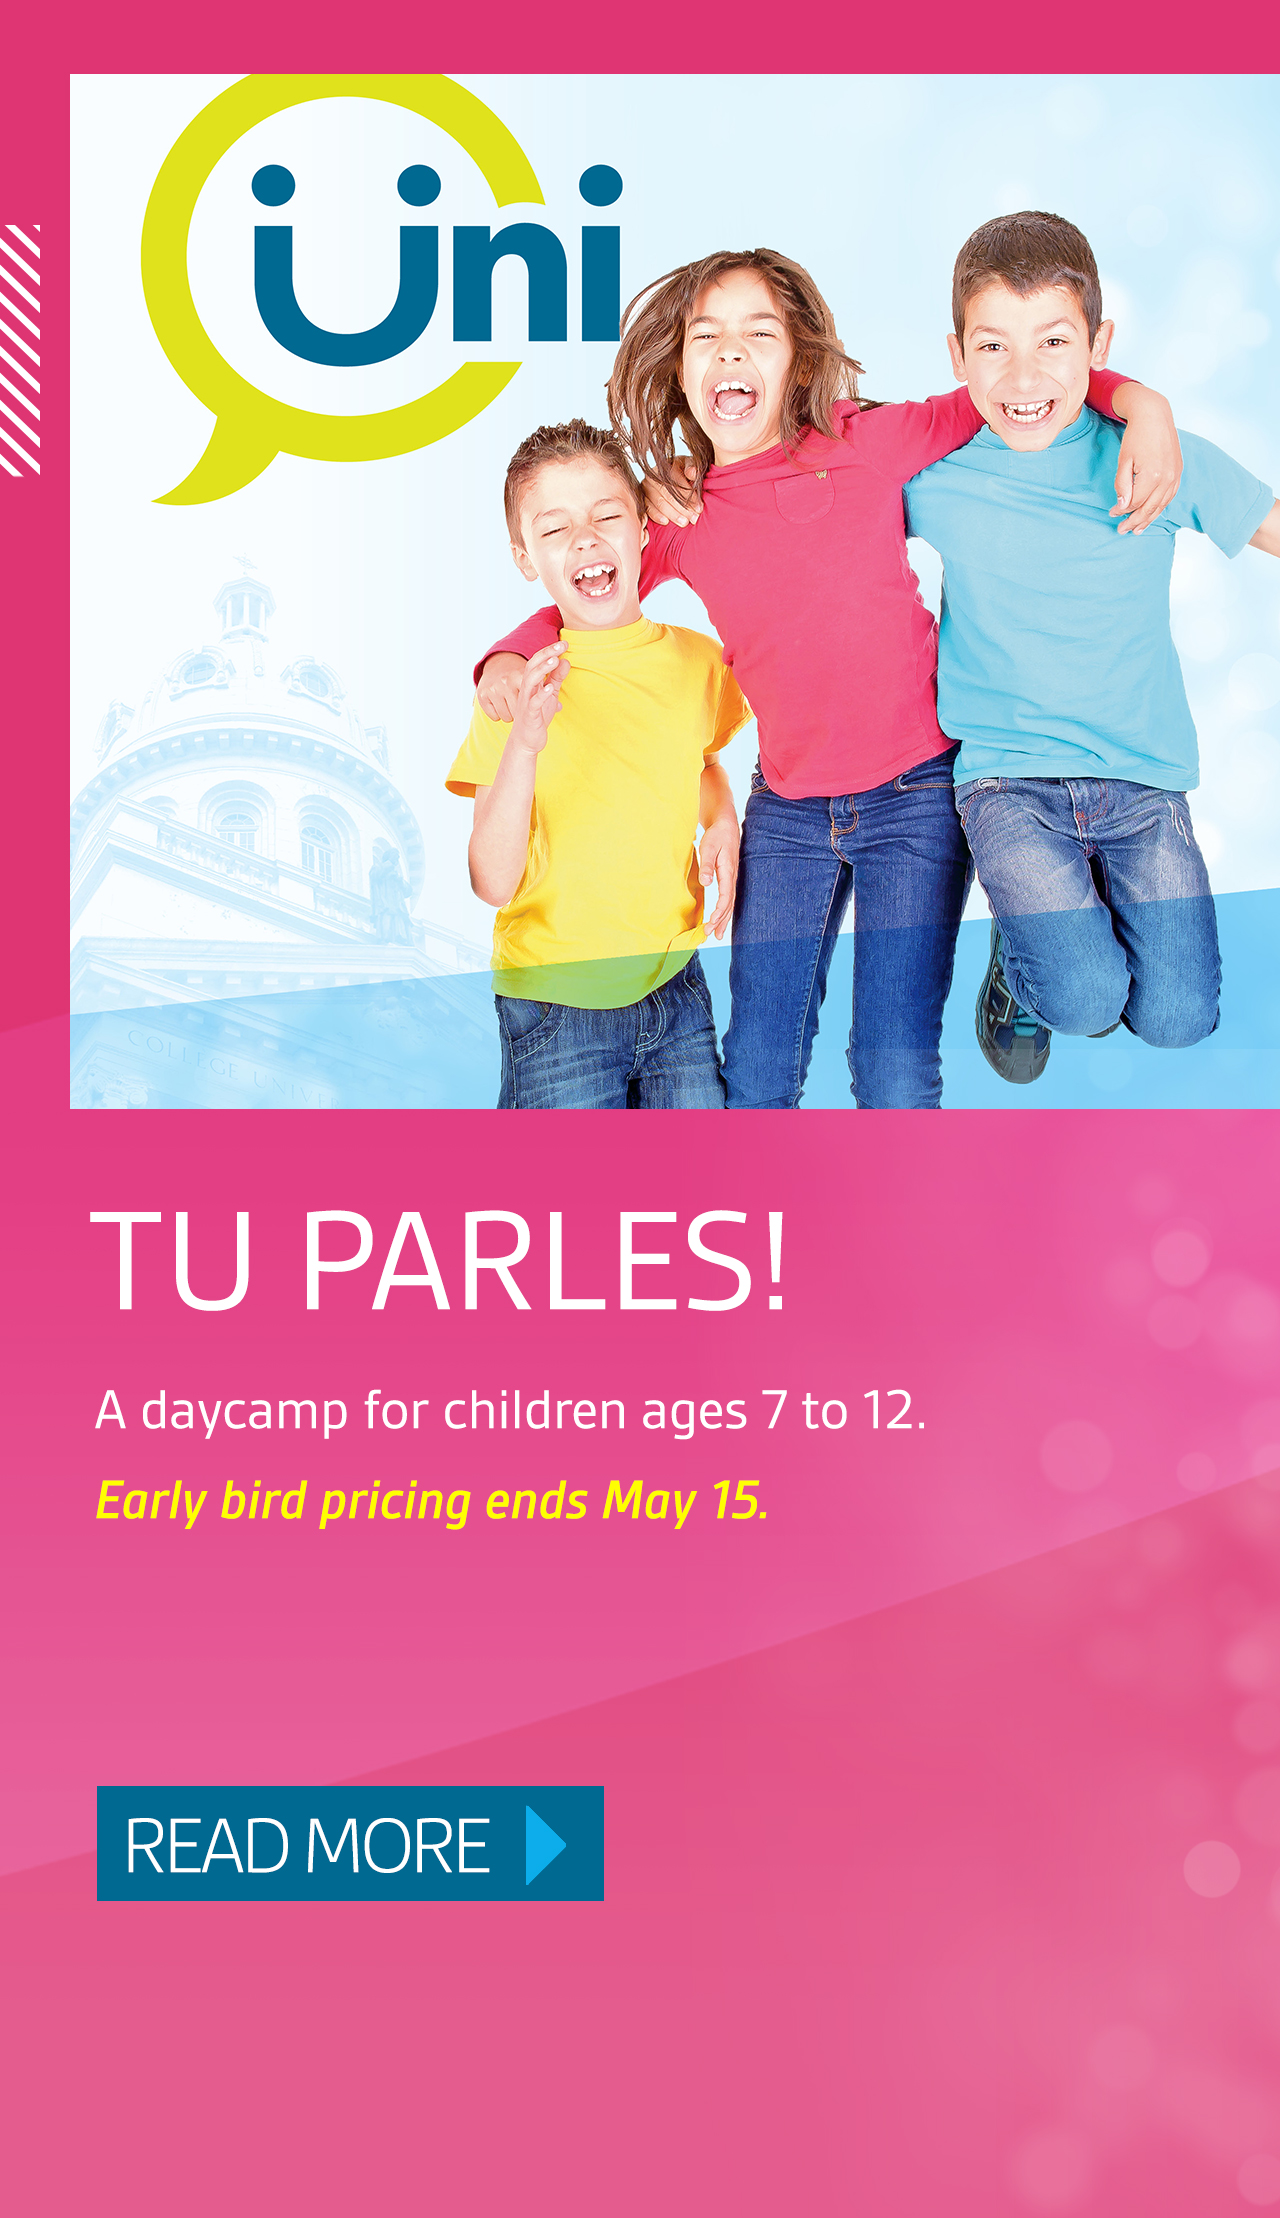 Tu parles! A daycamp for children ages 7 to 12. Early bird pricing ends May 15. Read more.